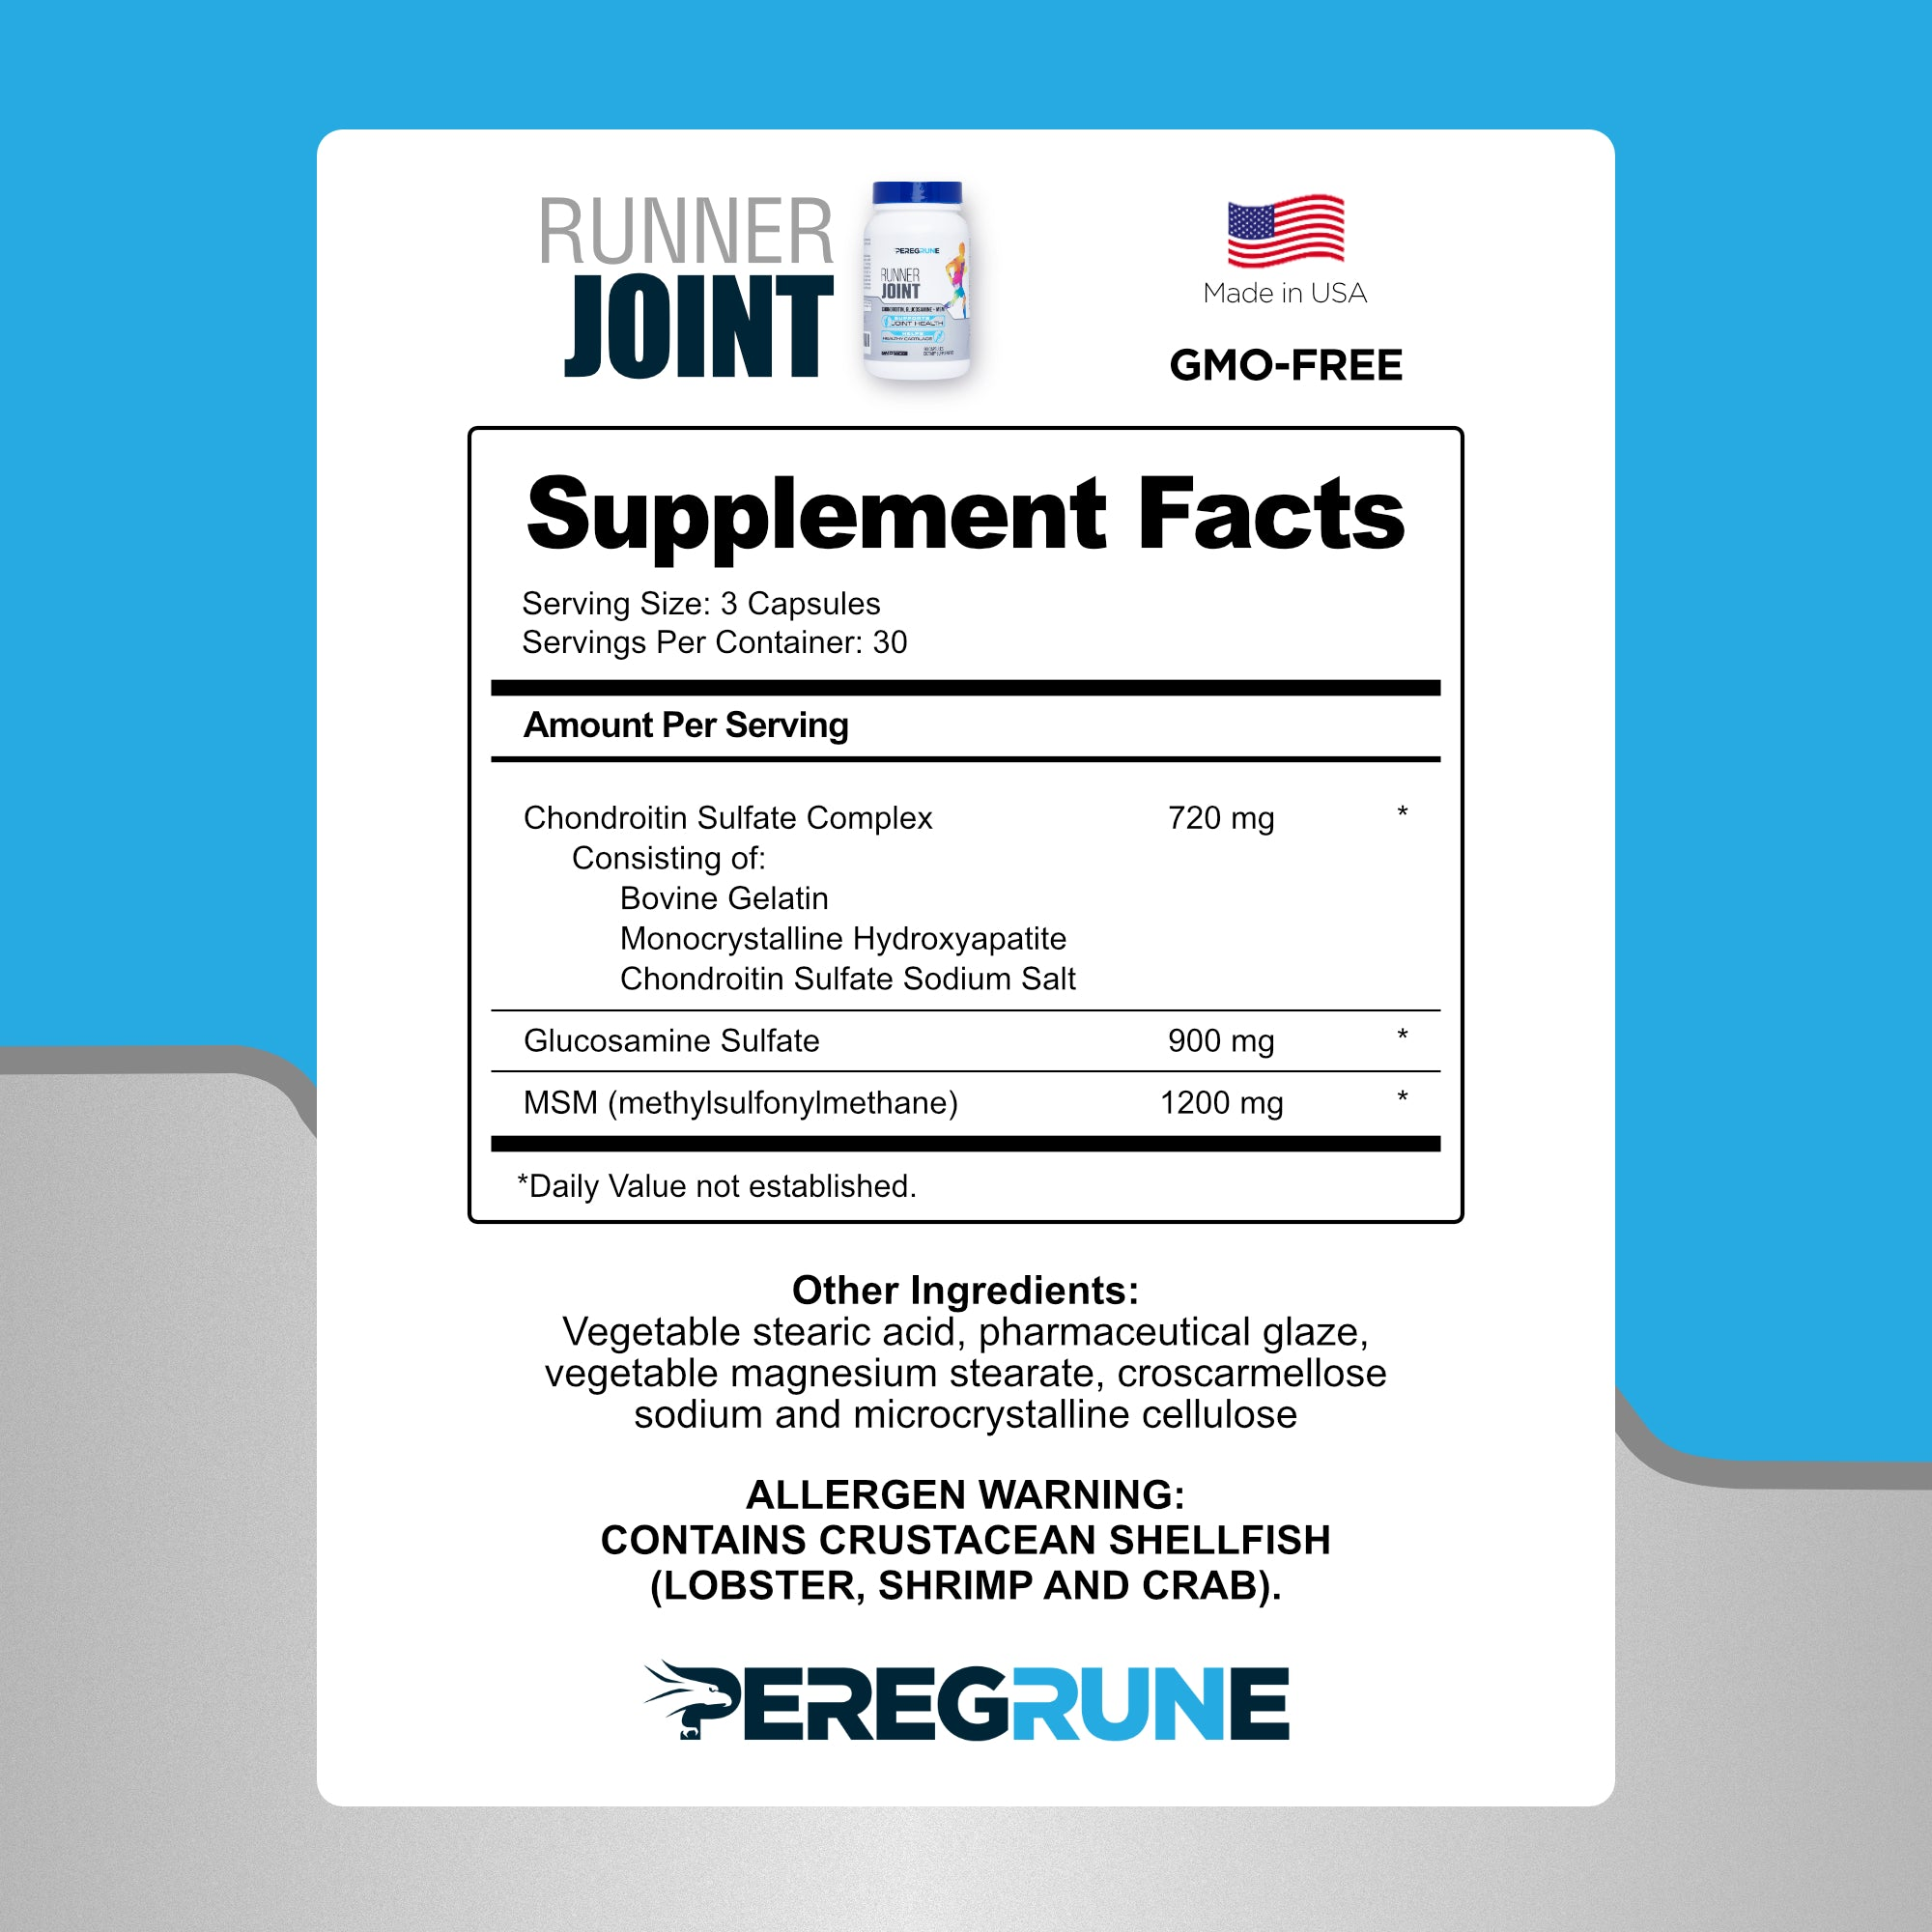 Runner Joint Support